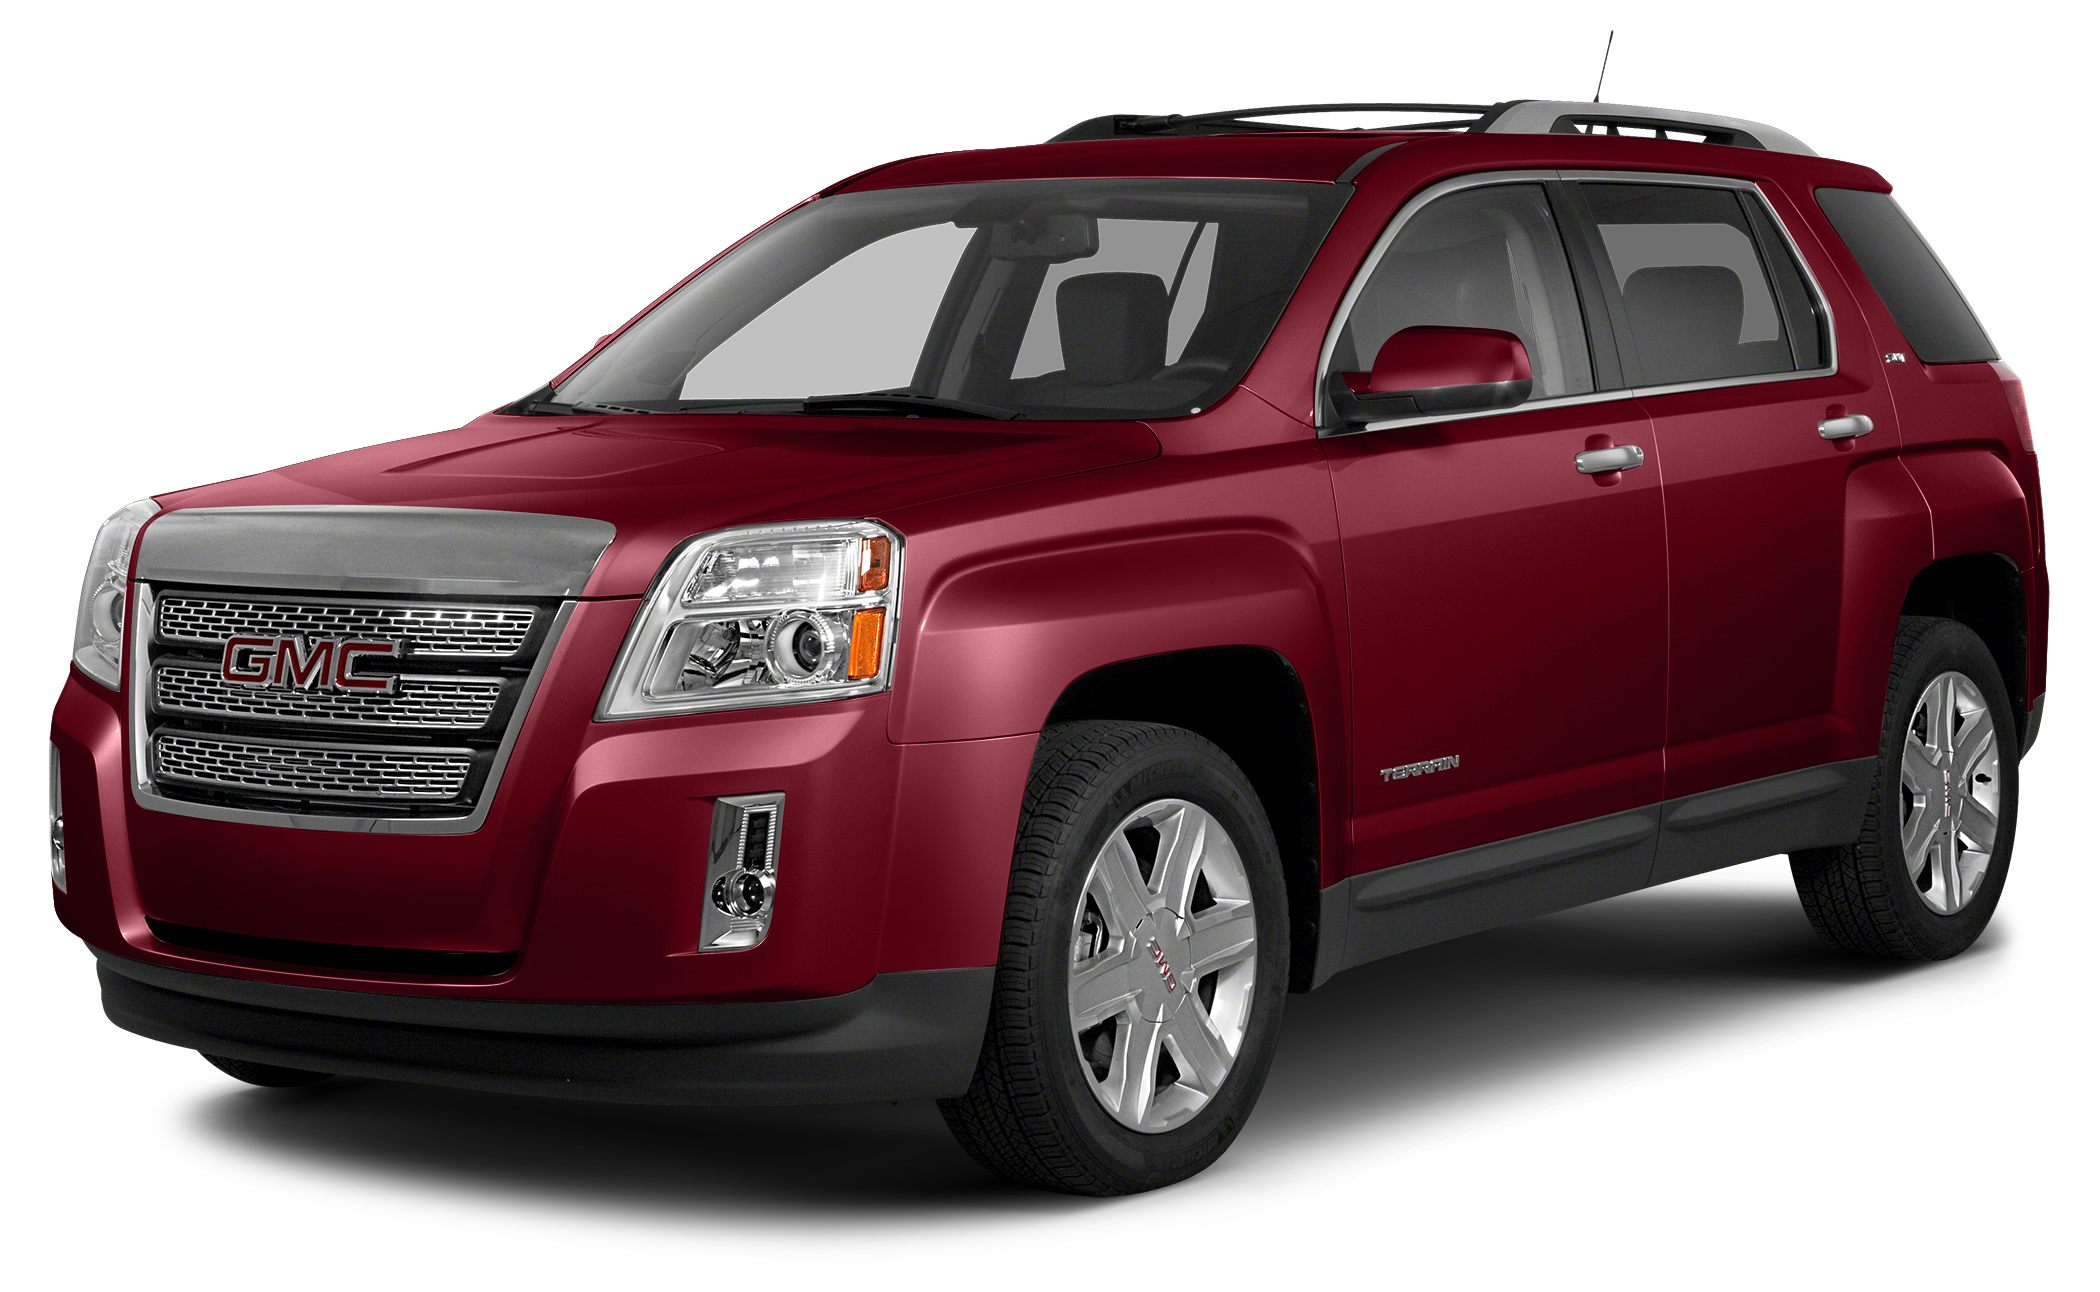 2014 GMC Terrain SLT-2 ITS OUR 50TH ANNIVERSARY HERE AT MARTYS AND TO CELEBRATE WERE OFFERING THE